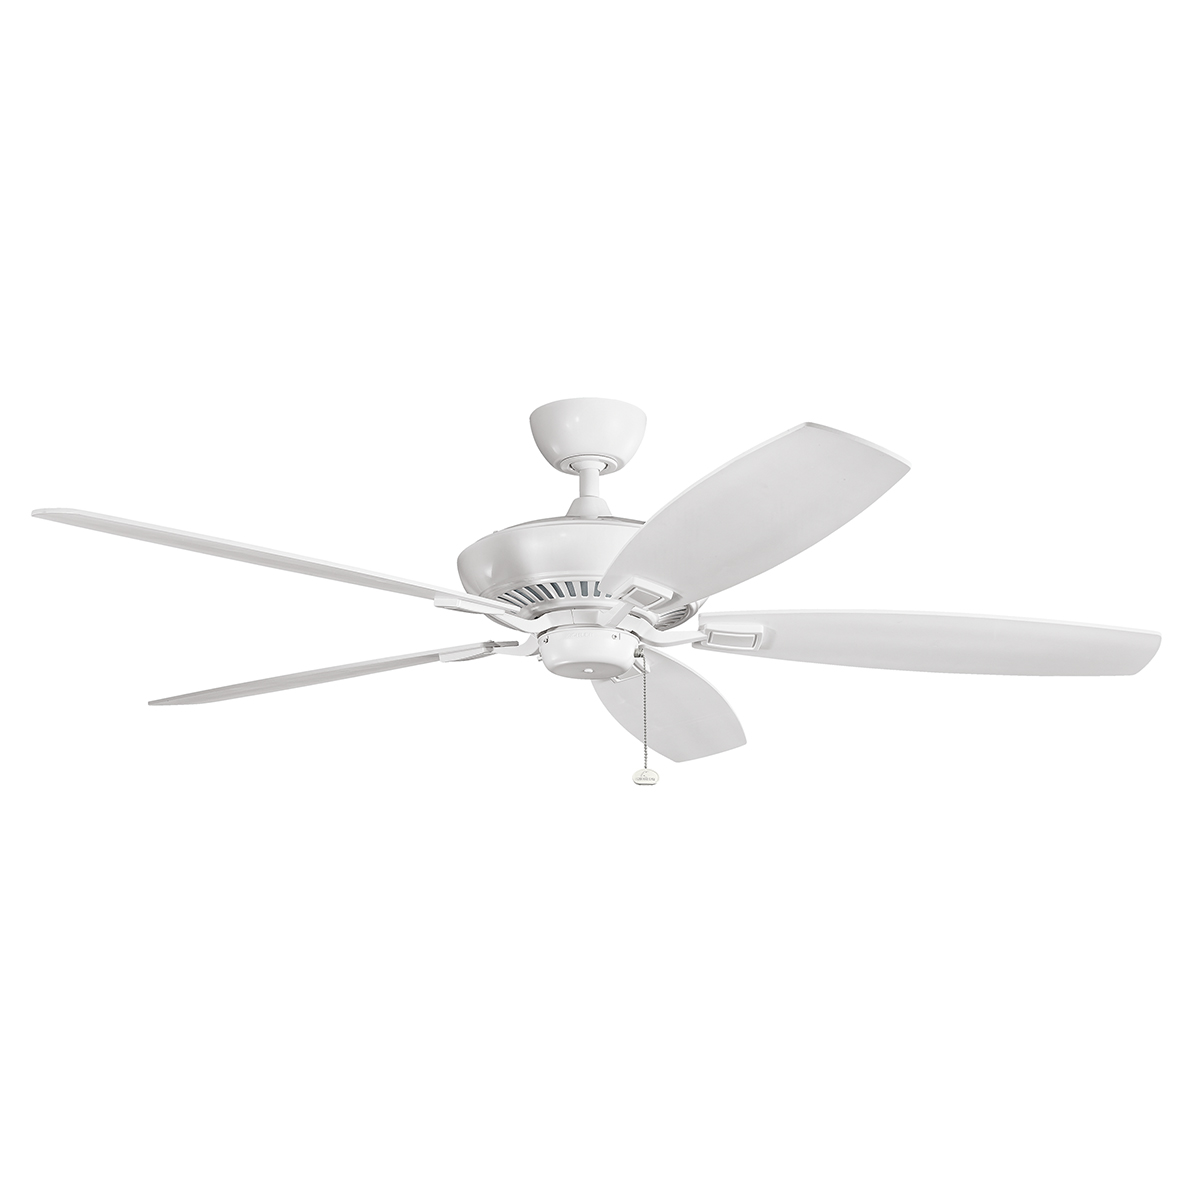 Kichler Lighting 300188wh Tulle 60 Ceiling Fan In White